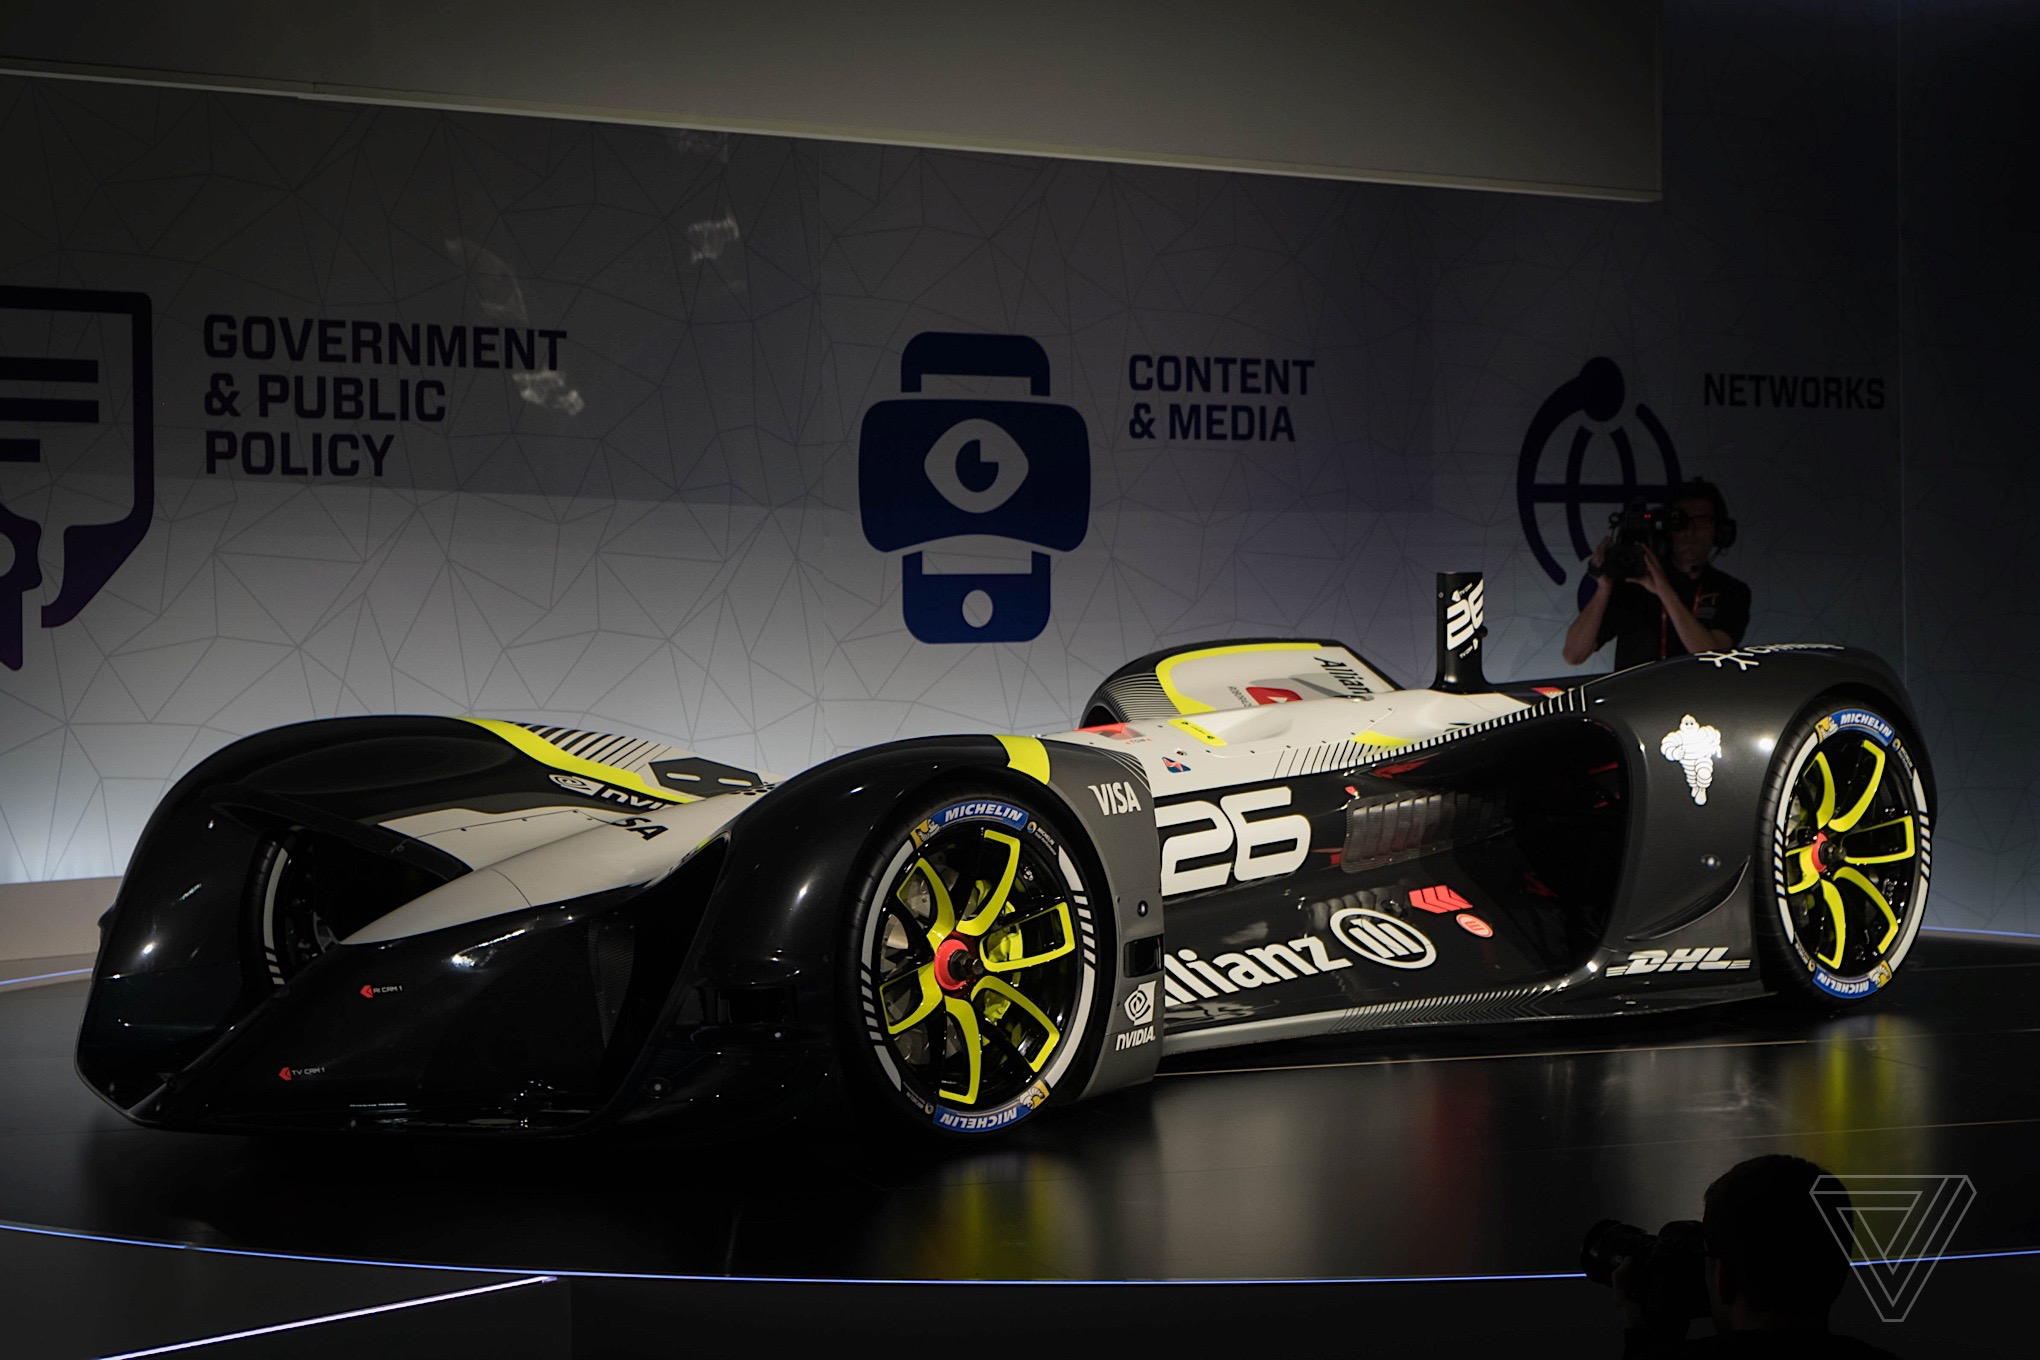 No driver required: Here's your first look at Roborace's self-driving Robocar